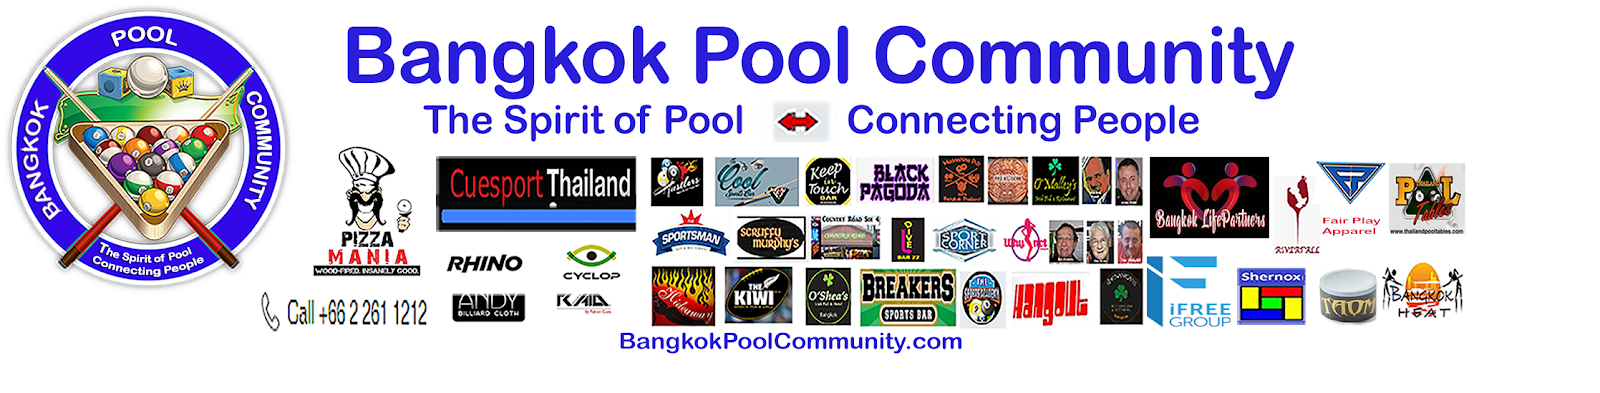 Bangkok Pool Community